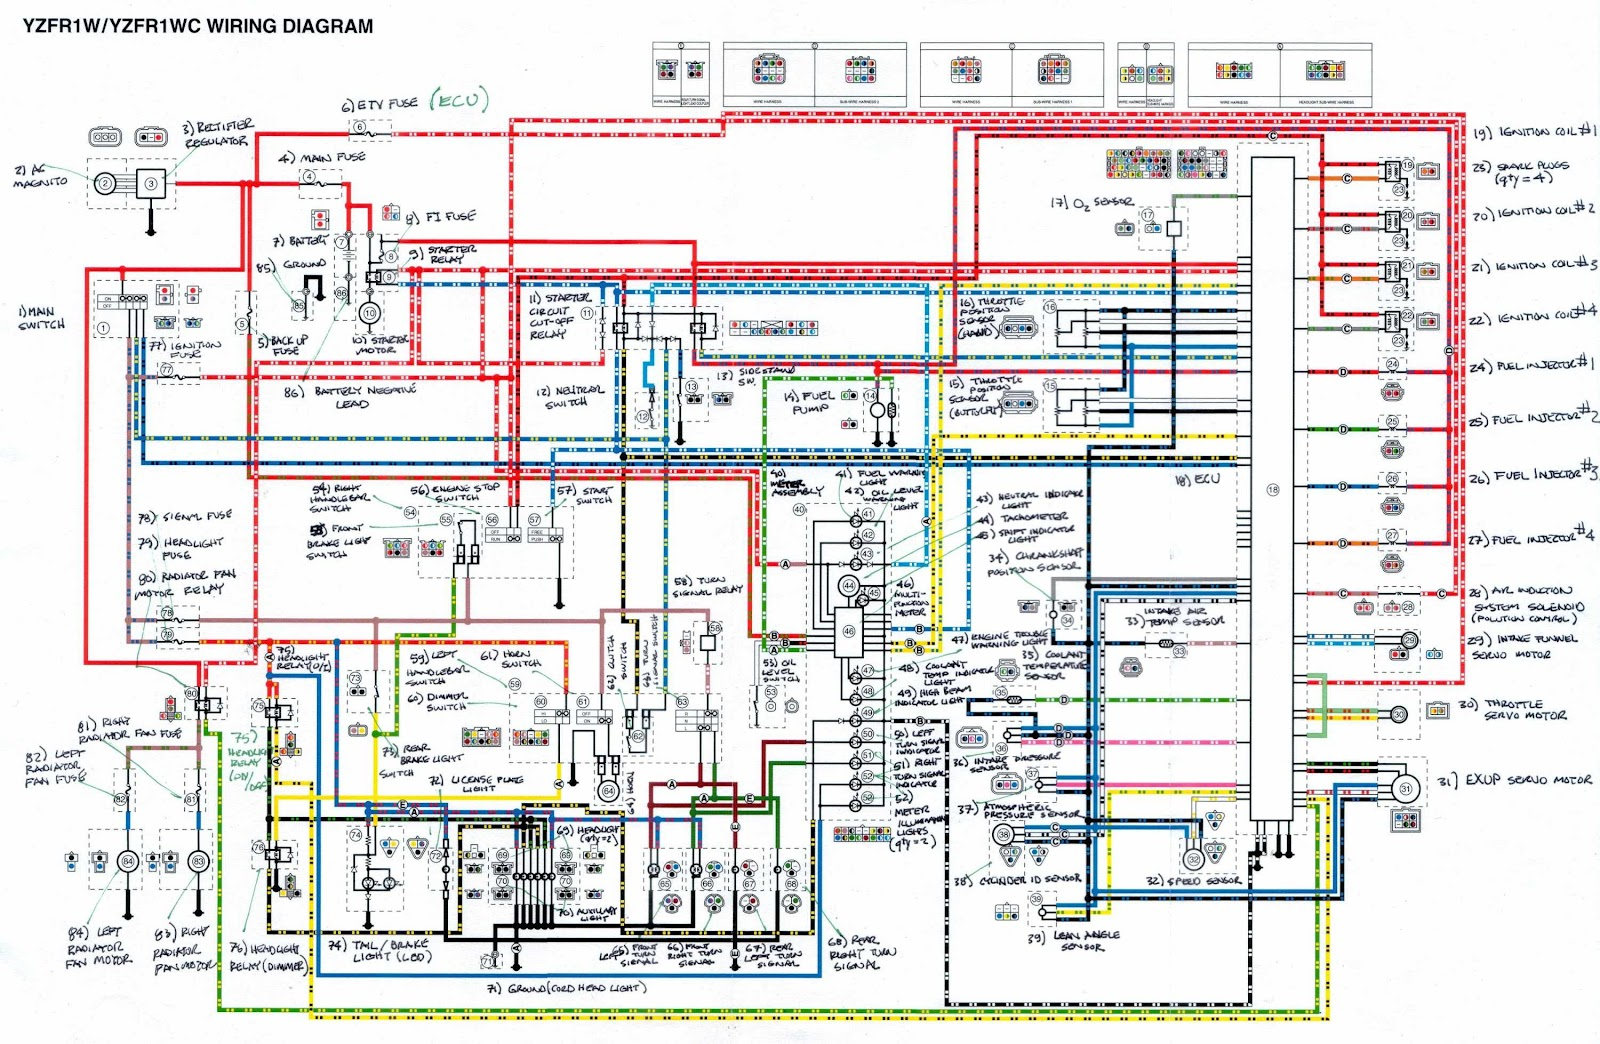 Yamaha+YZF R1+Motorcycle+Wiring+Diagram?resize=665%2C434 2003 yamaha r6 wiring diagram the best wiring diagram 2017 2008 yamaha r1 wiring diagram at cos-gaming.co